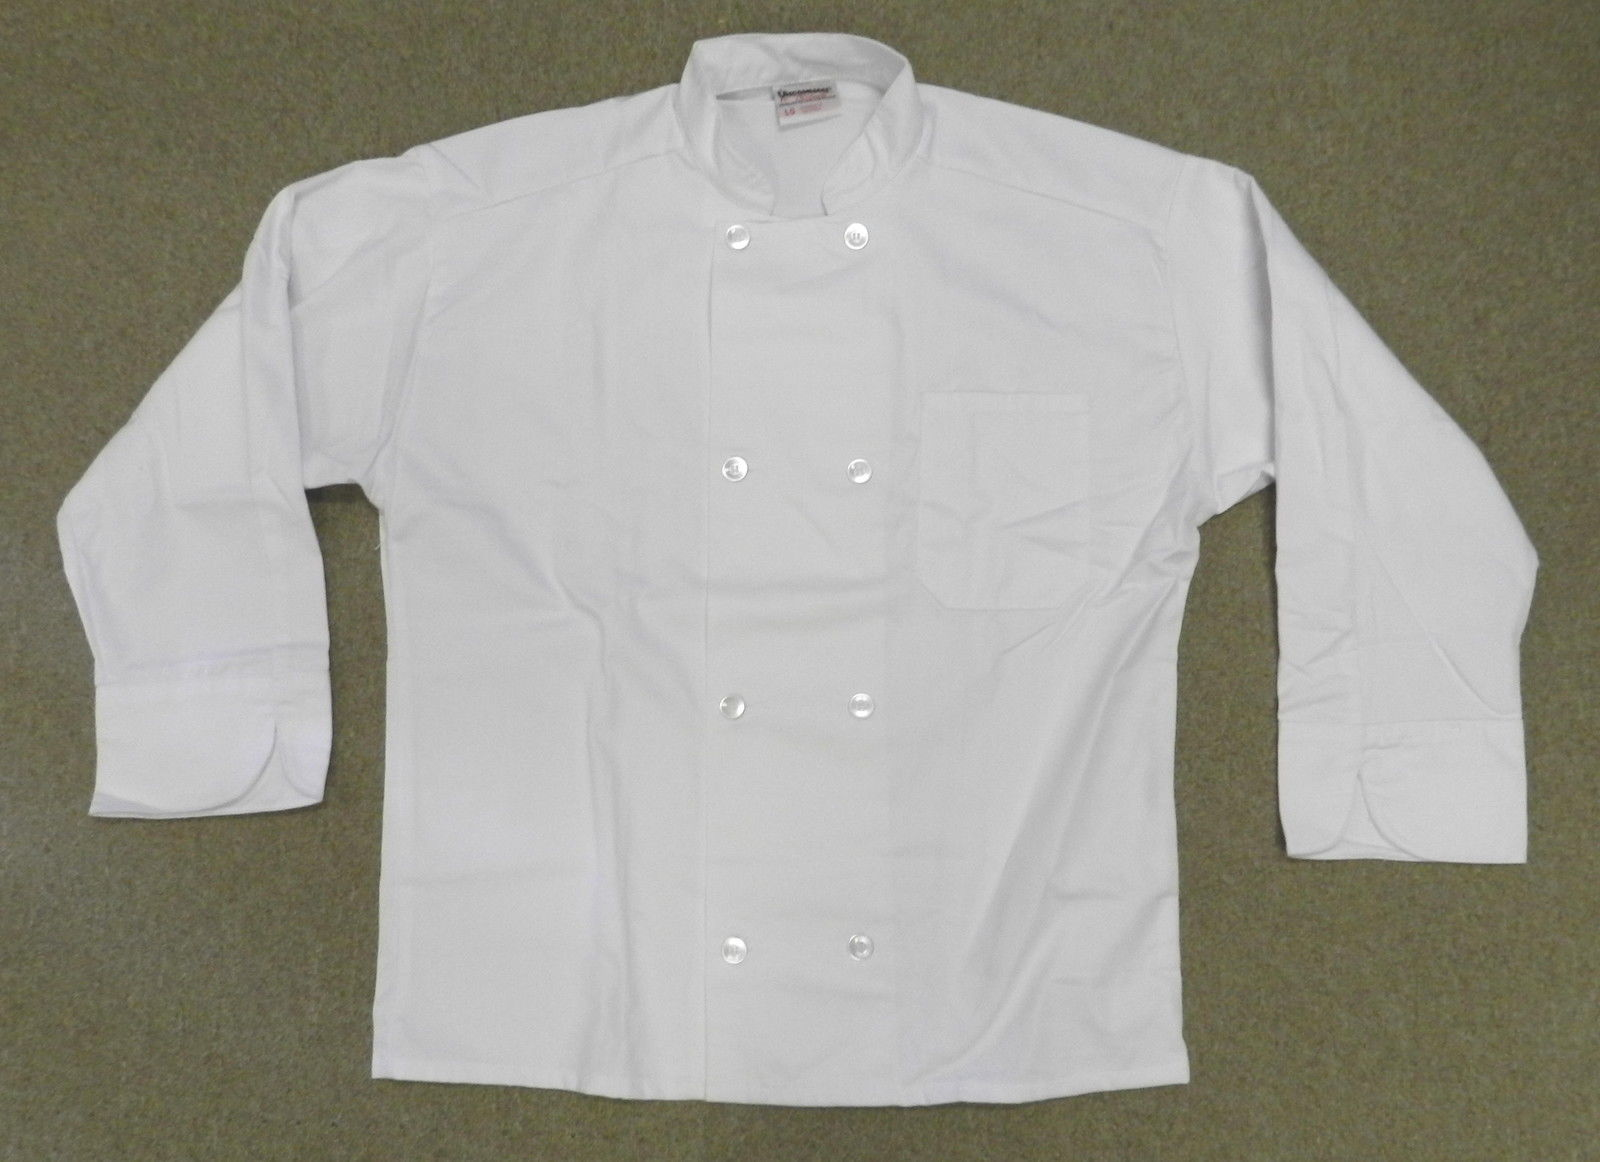 Primary image for Executive Chef Coat Jacket White L Uncommon Threads JS400 Restaurant Uniform New